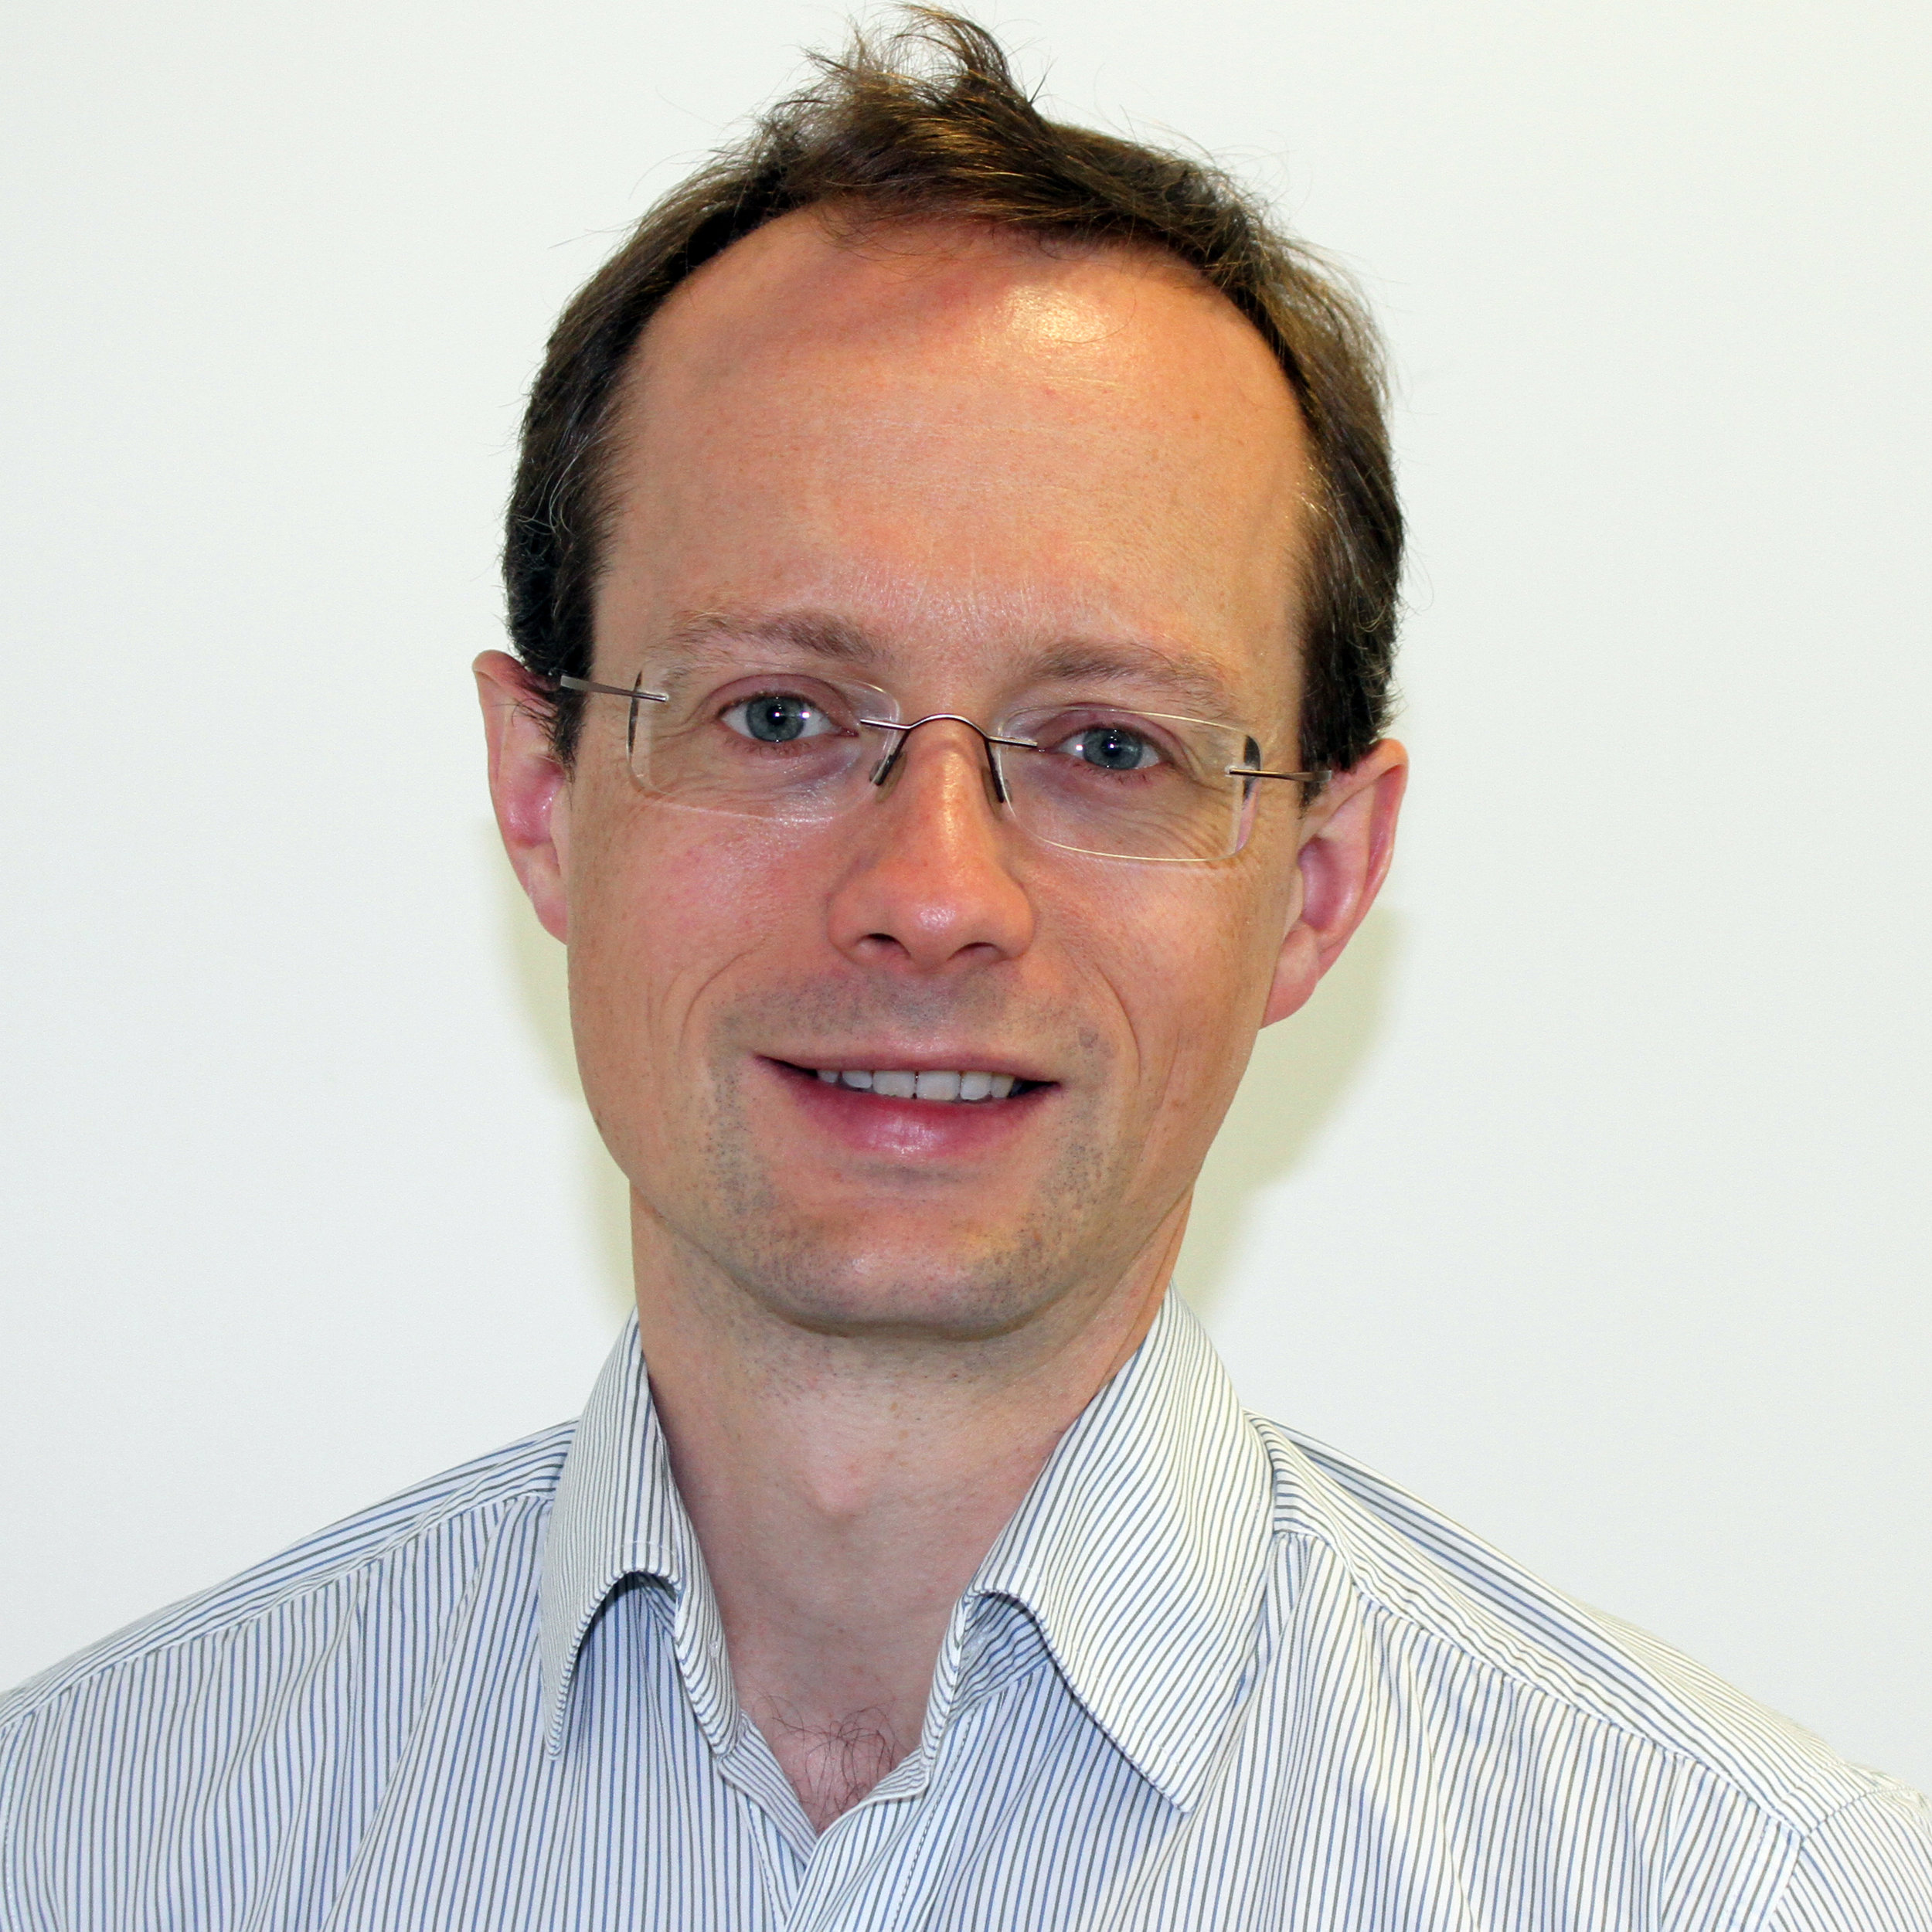 Stephen Muers - Head of Strategy and Market Development, Big Society CapitalRead Biography